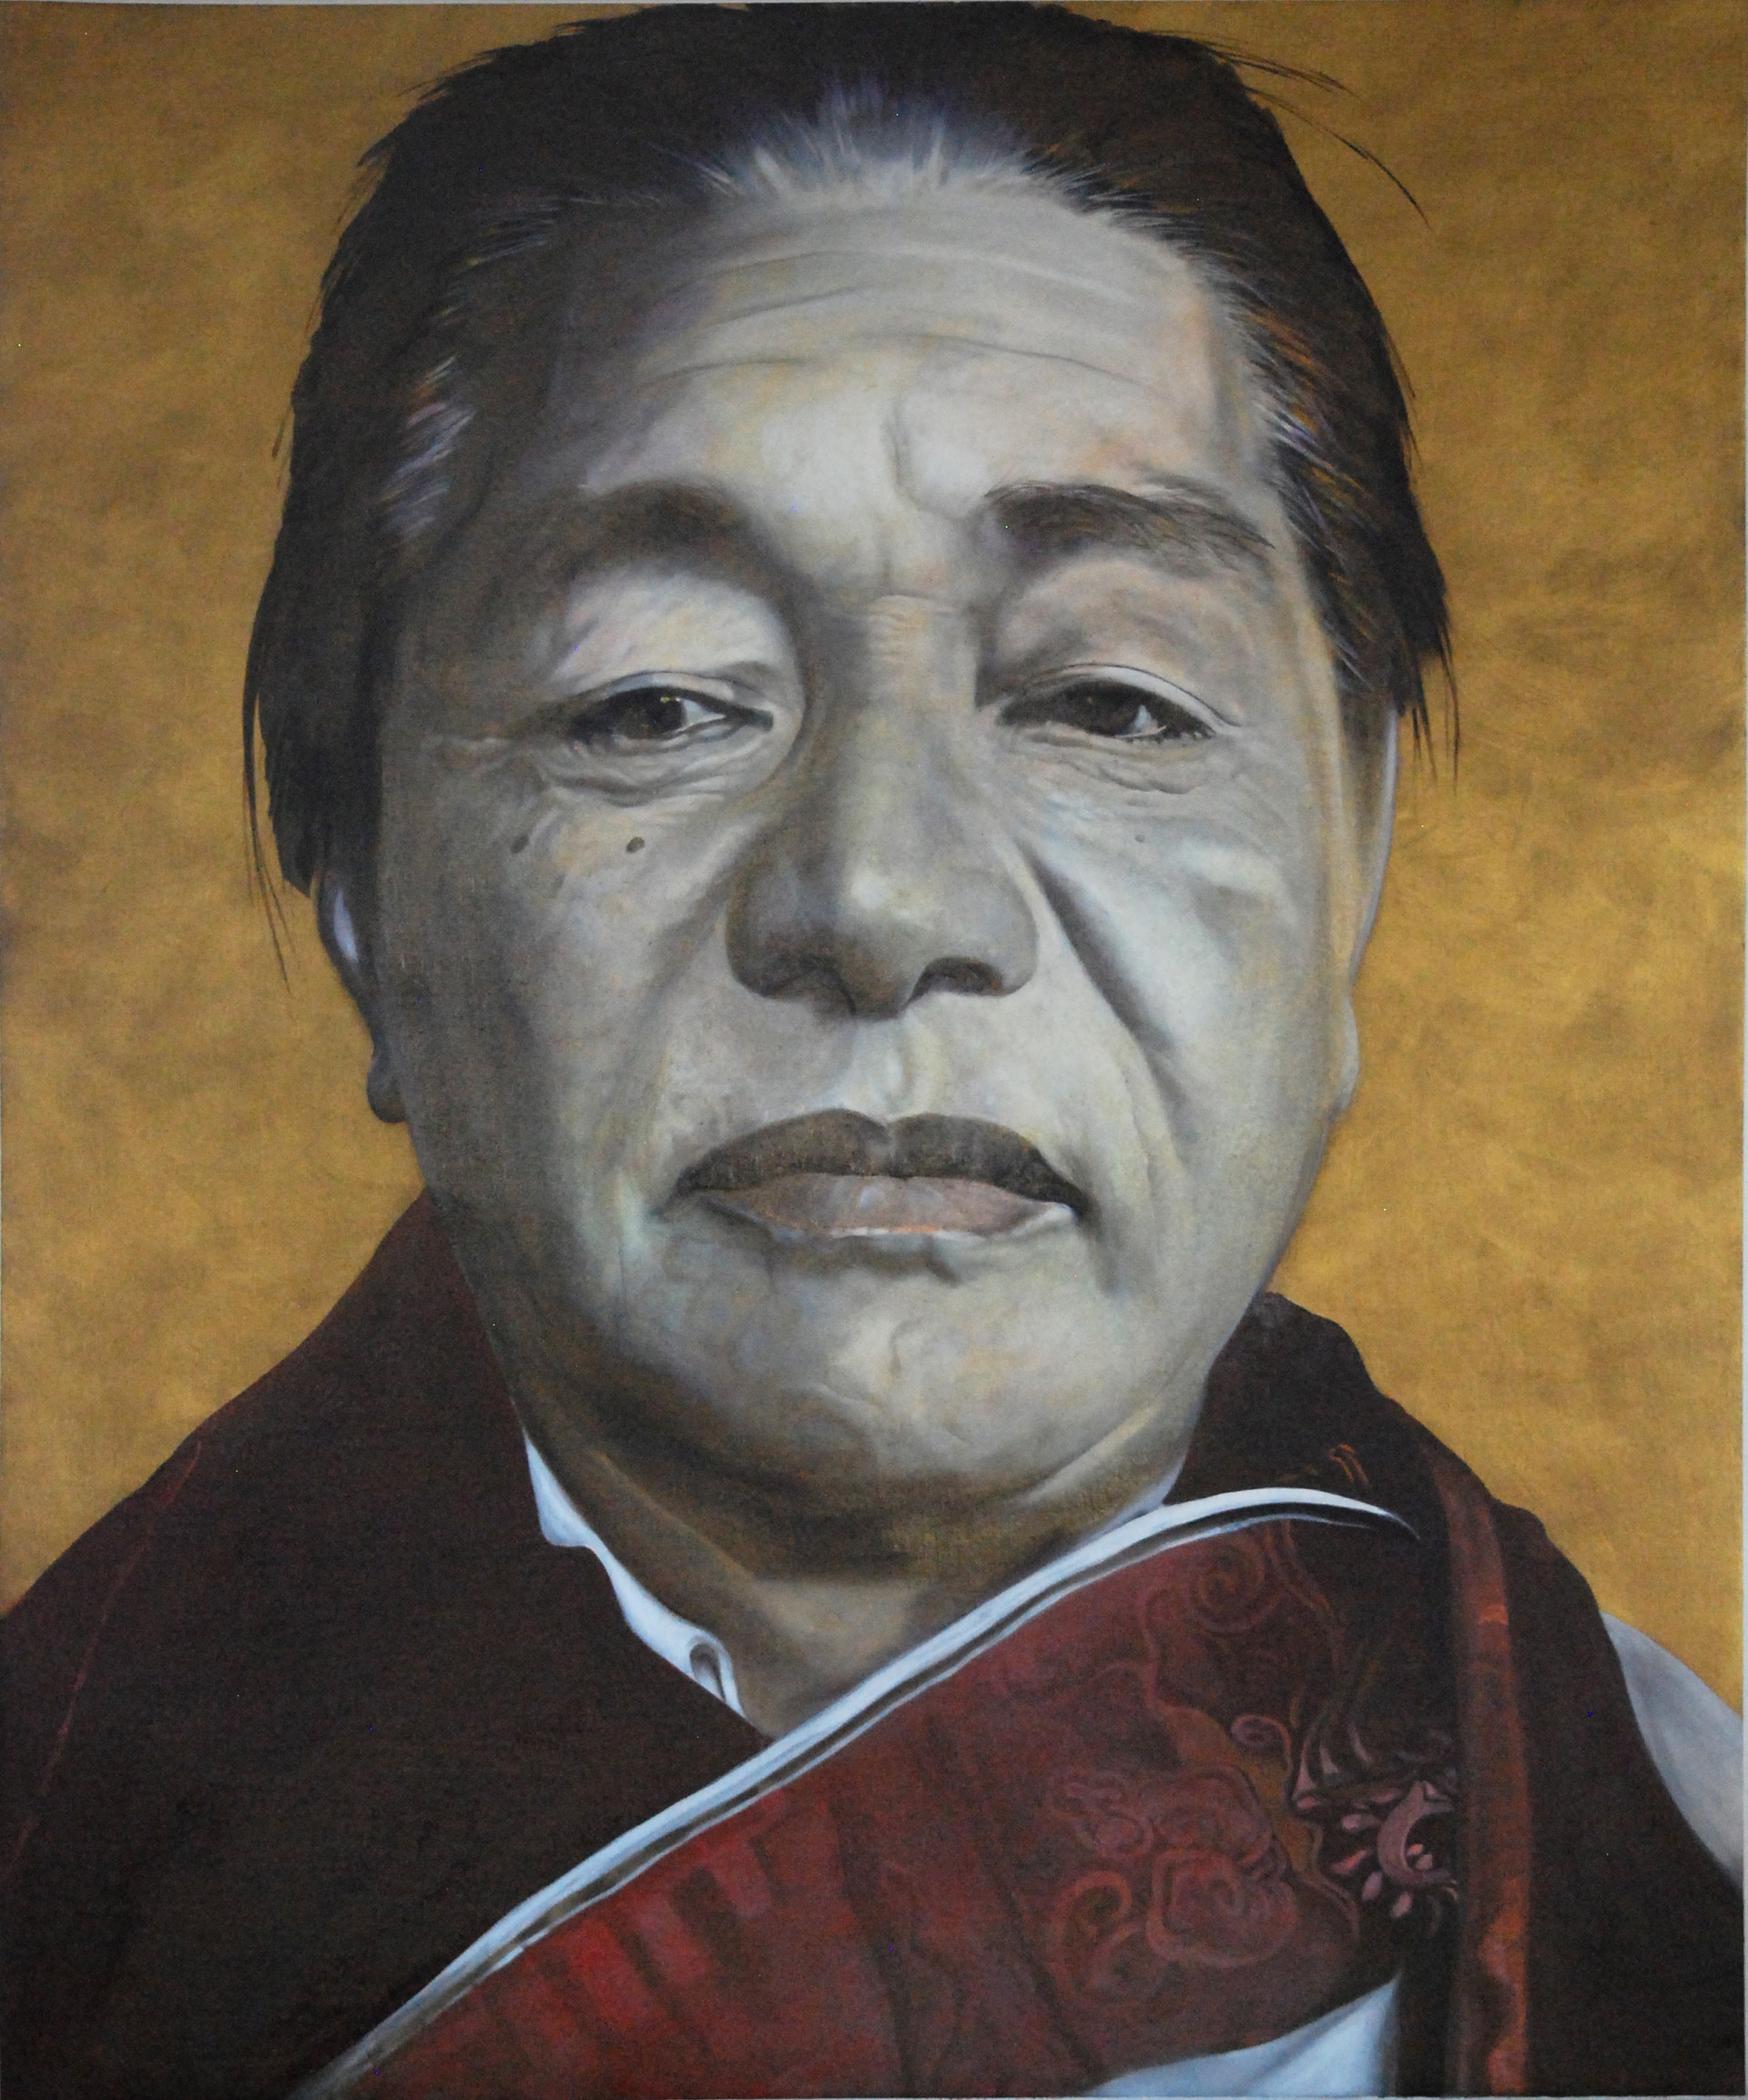 Dudjom Rinpoche 2016 Oel on Canvas